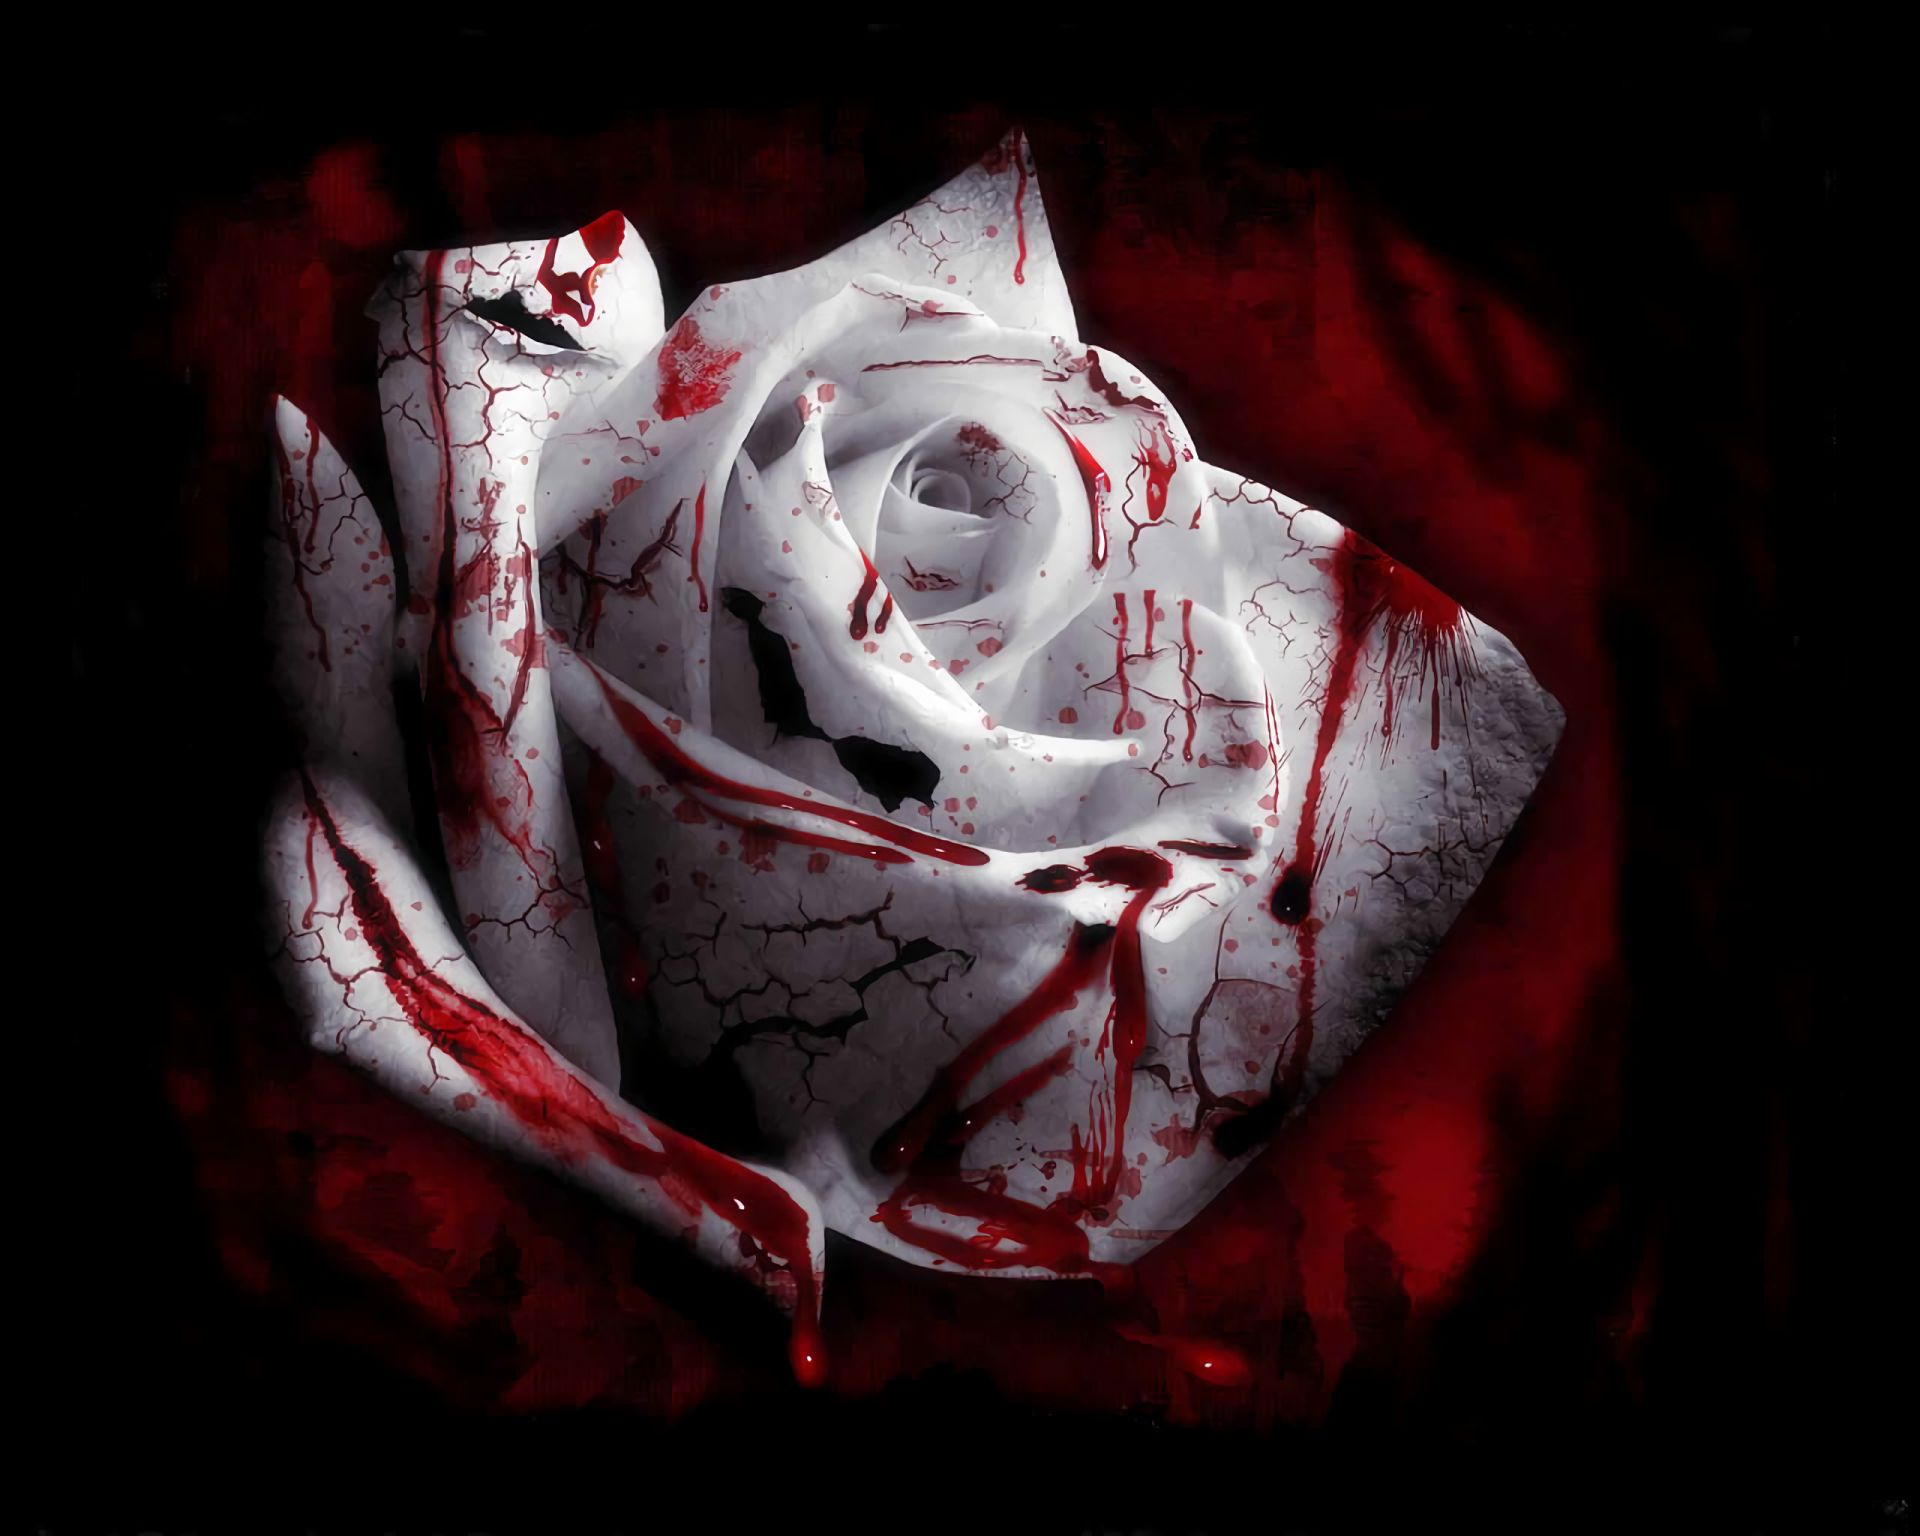 white rose with bloody spots on a dark background